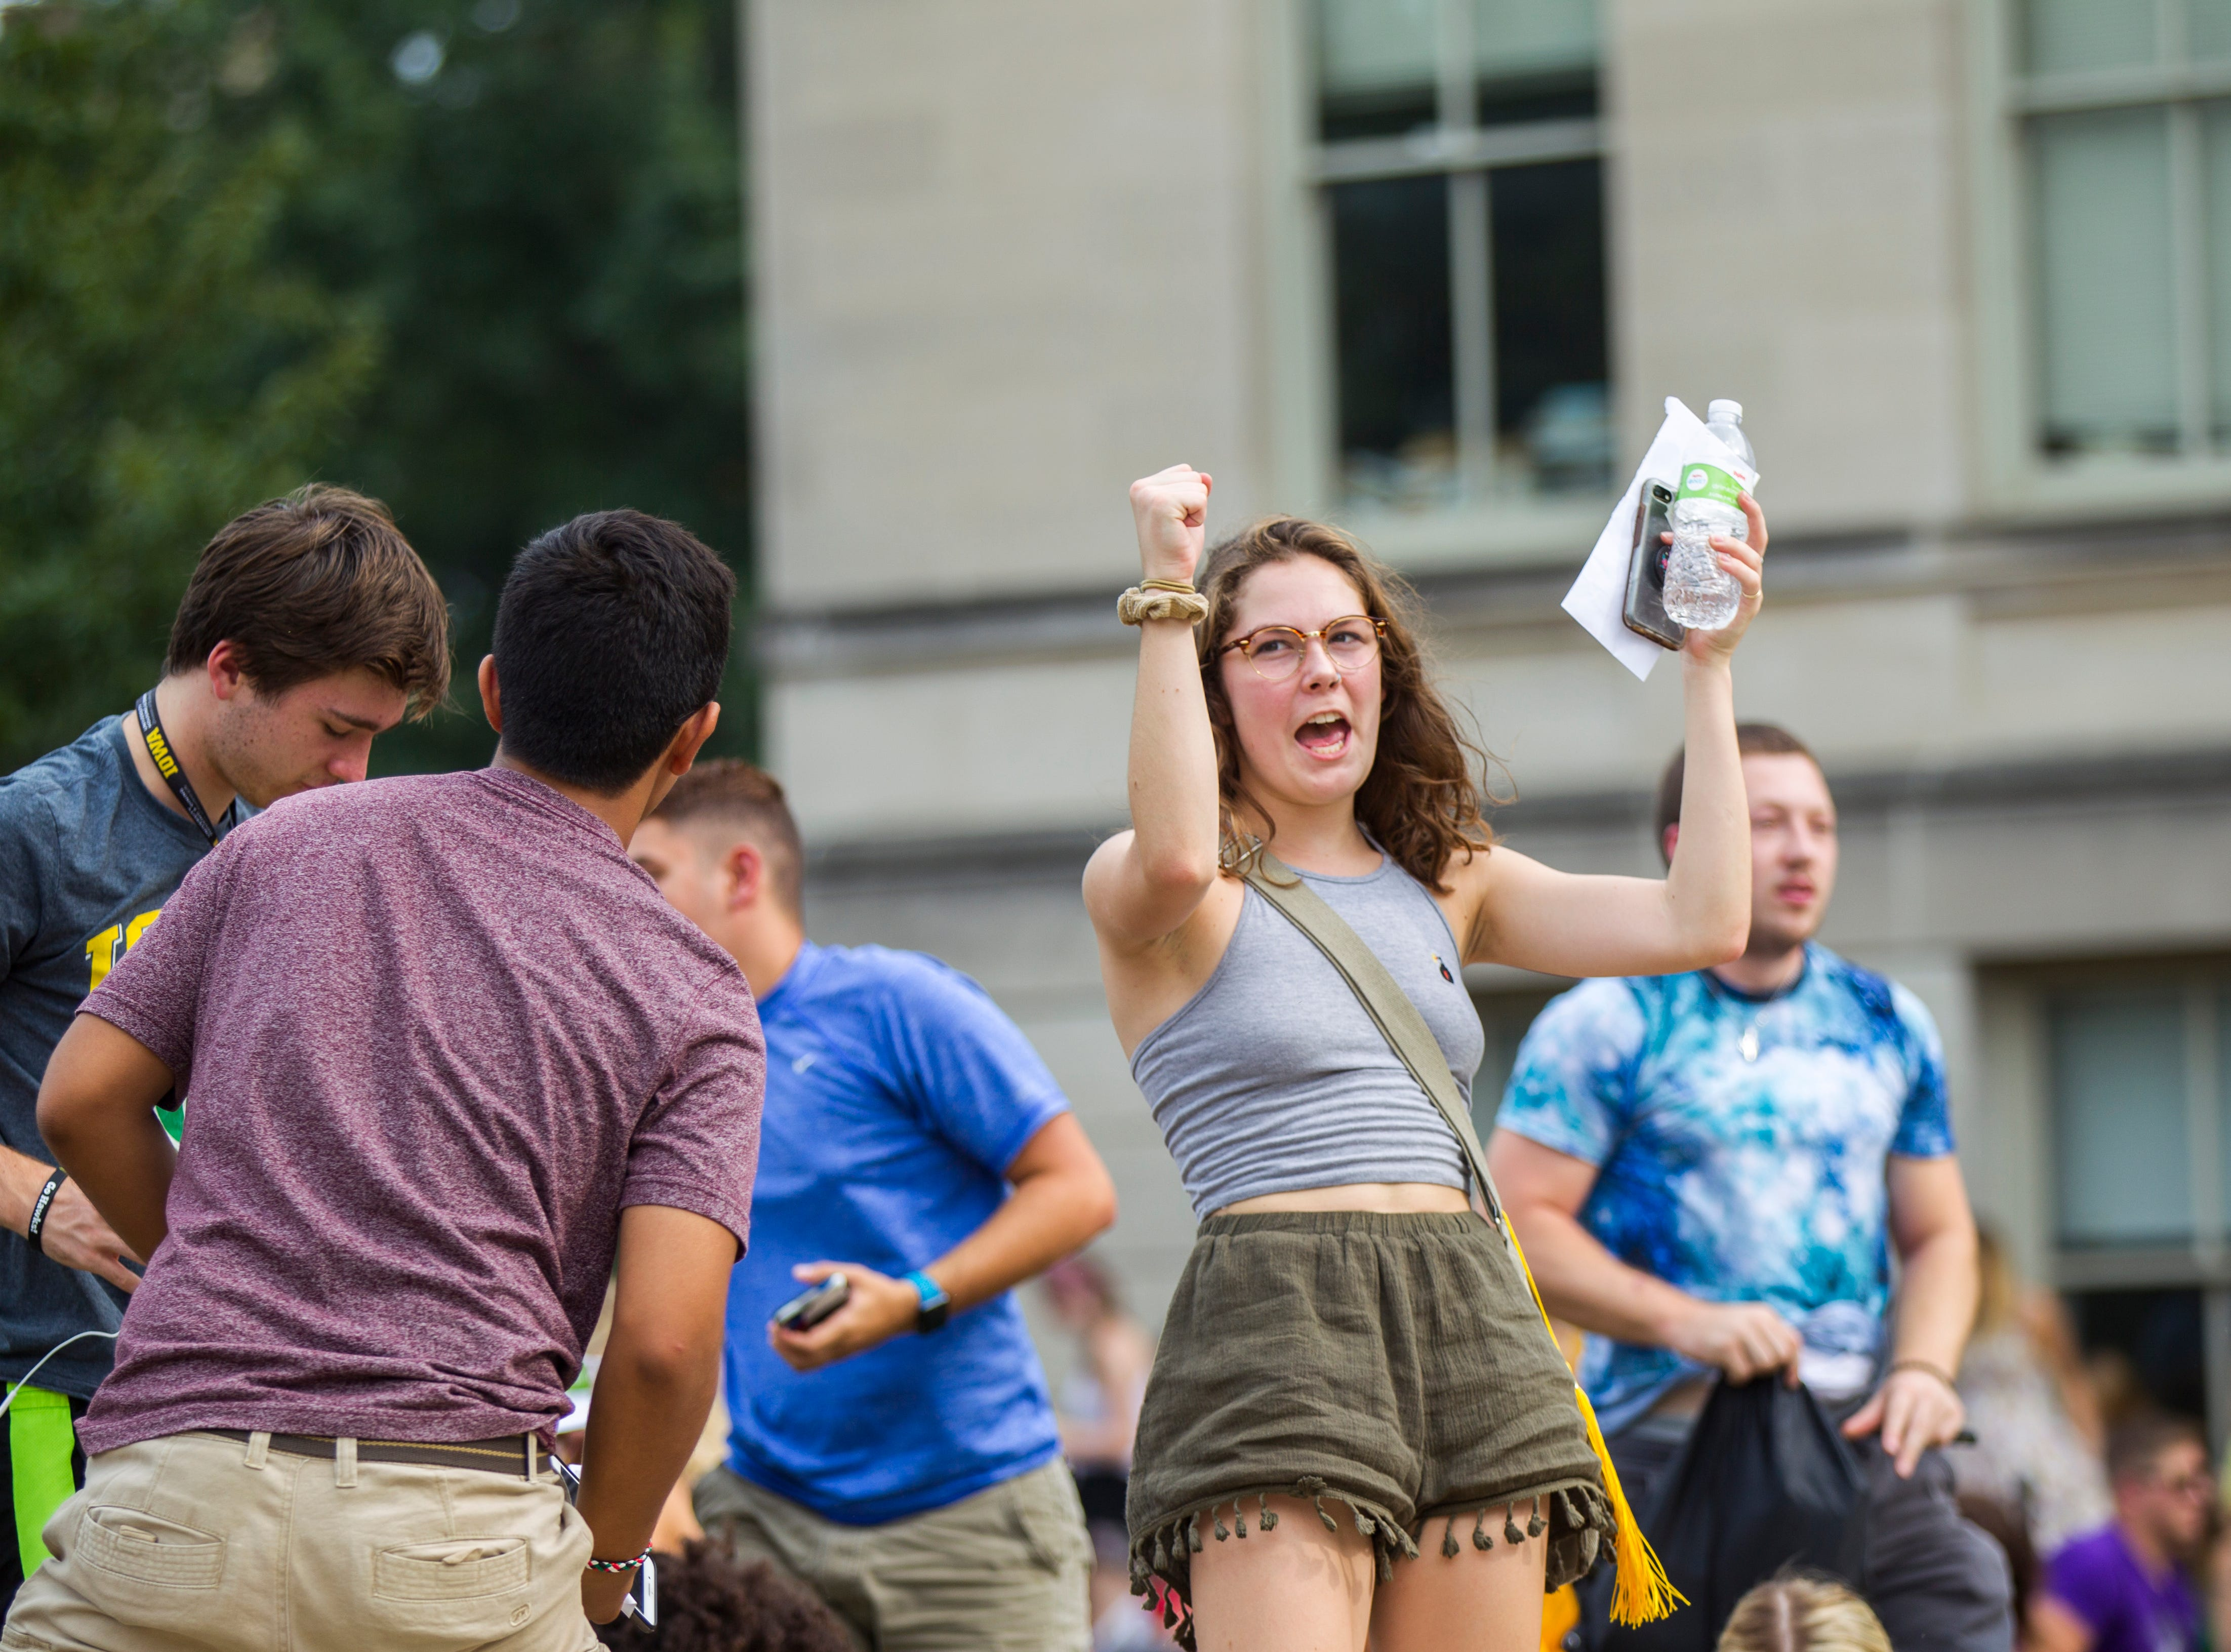 A student celebrates during the University of Iowa class of 2022 convocation on Sunday, Aug. 19, 2018, at the Pentacrest in Iowa City.